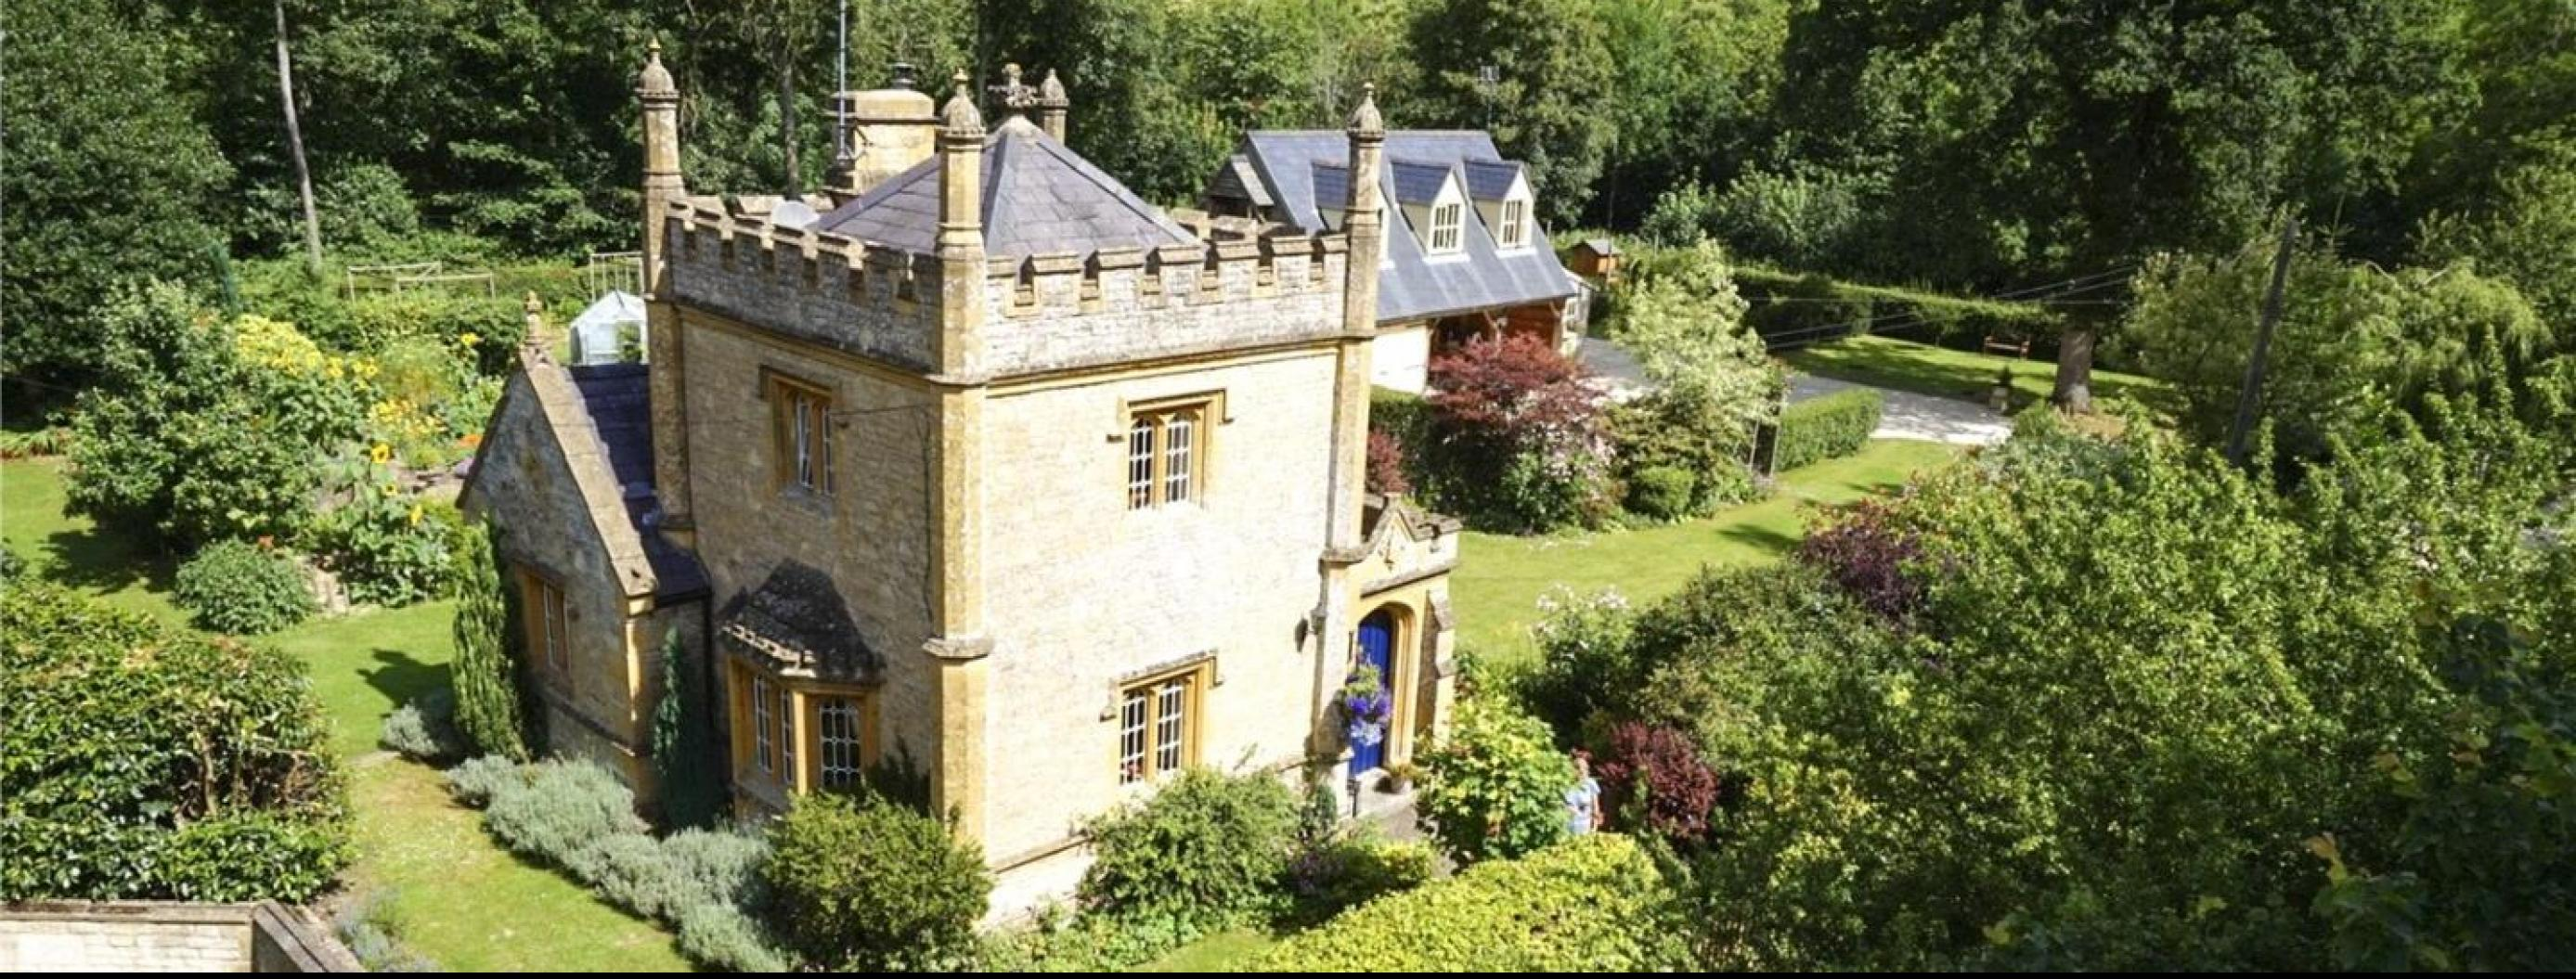 Forget Tiny Houses, Buy this Tiny Castle in the UK for Only £550,000!